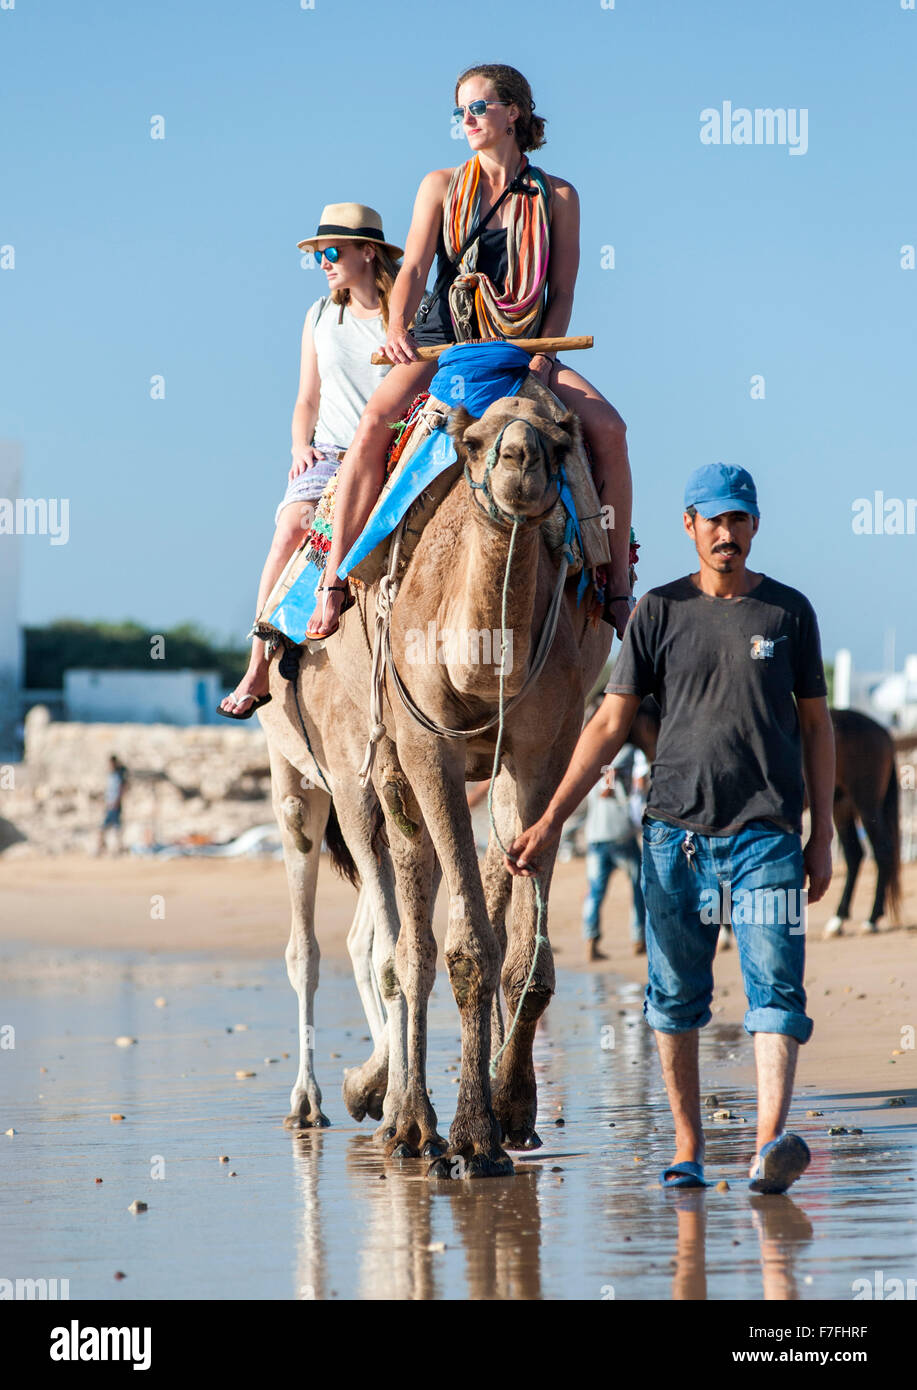 Tourists riding camels along the water's edge of Sidi Kaouki beach in Morocco. - Stock Image